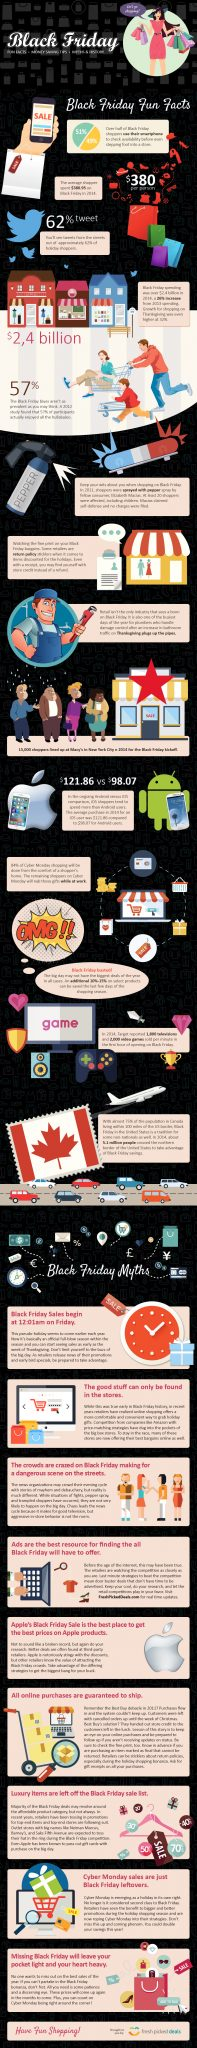 Fun Facts About Black Friday - Infographic